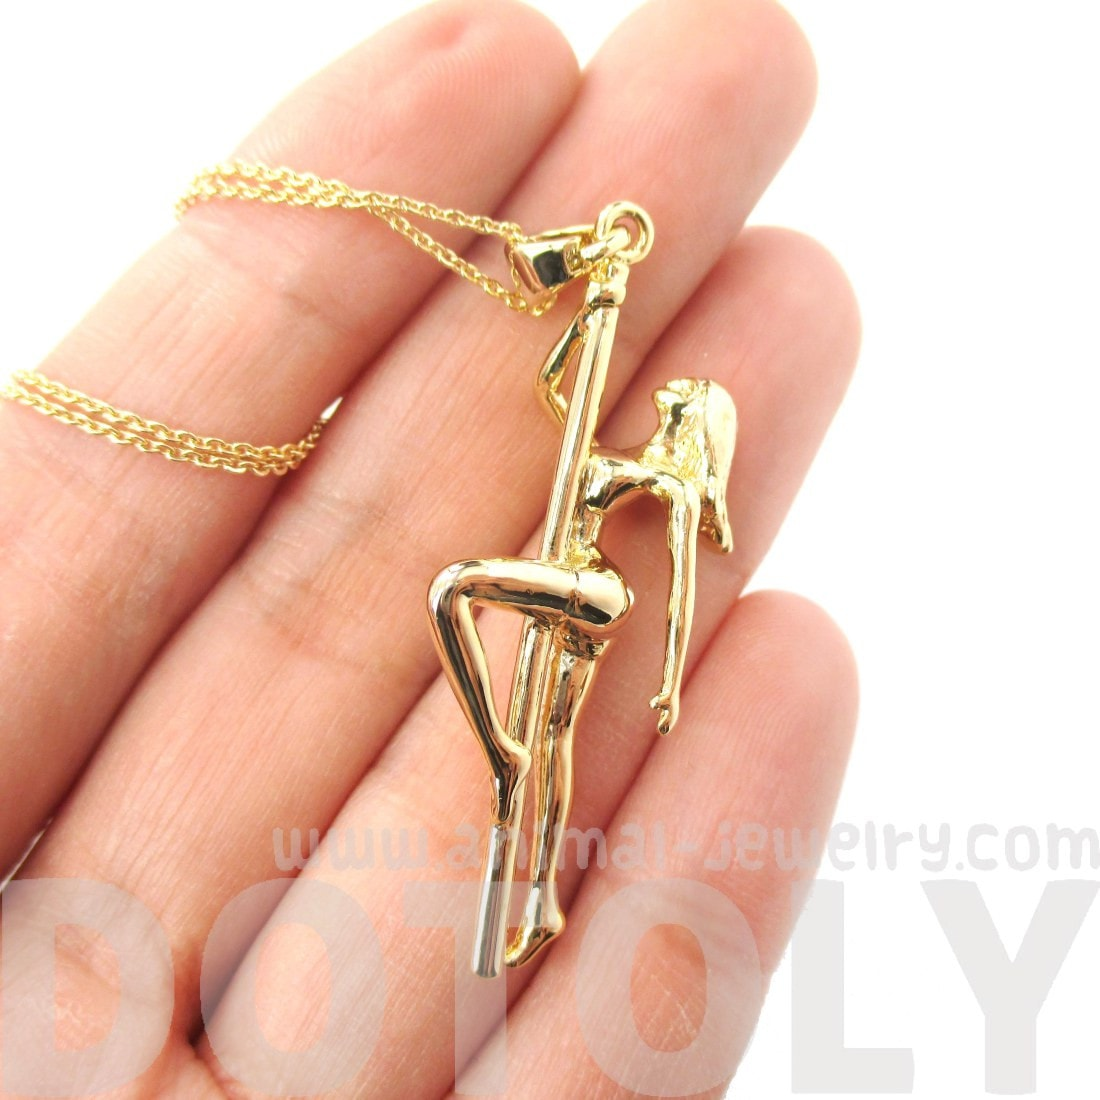 Pole Dancer Aerial Dance Girl Pendant Necklace in Gold